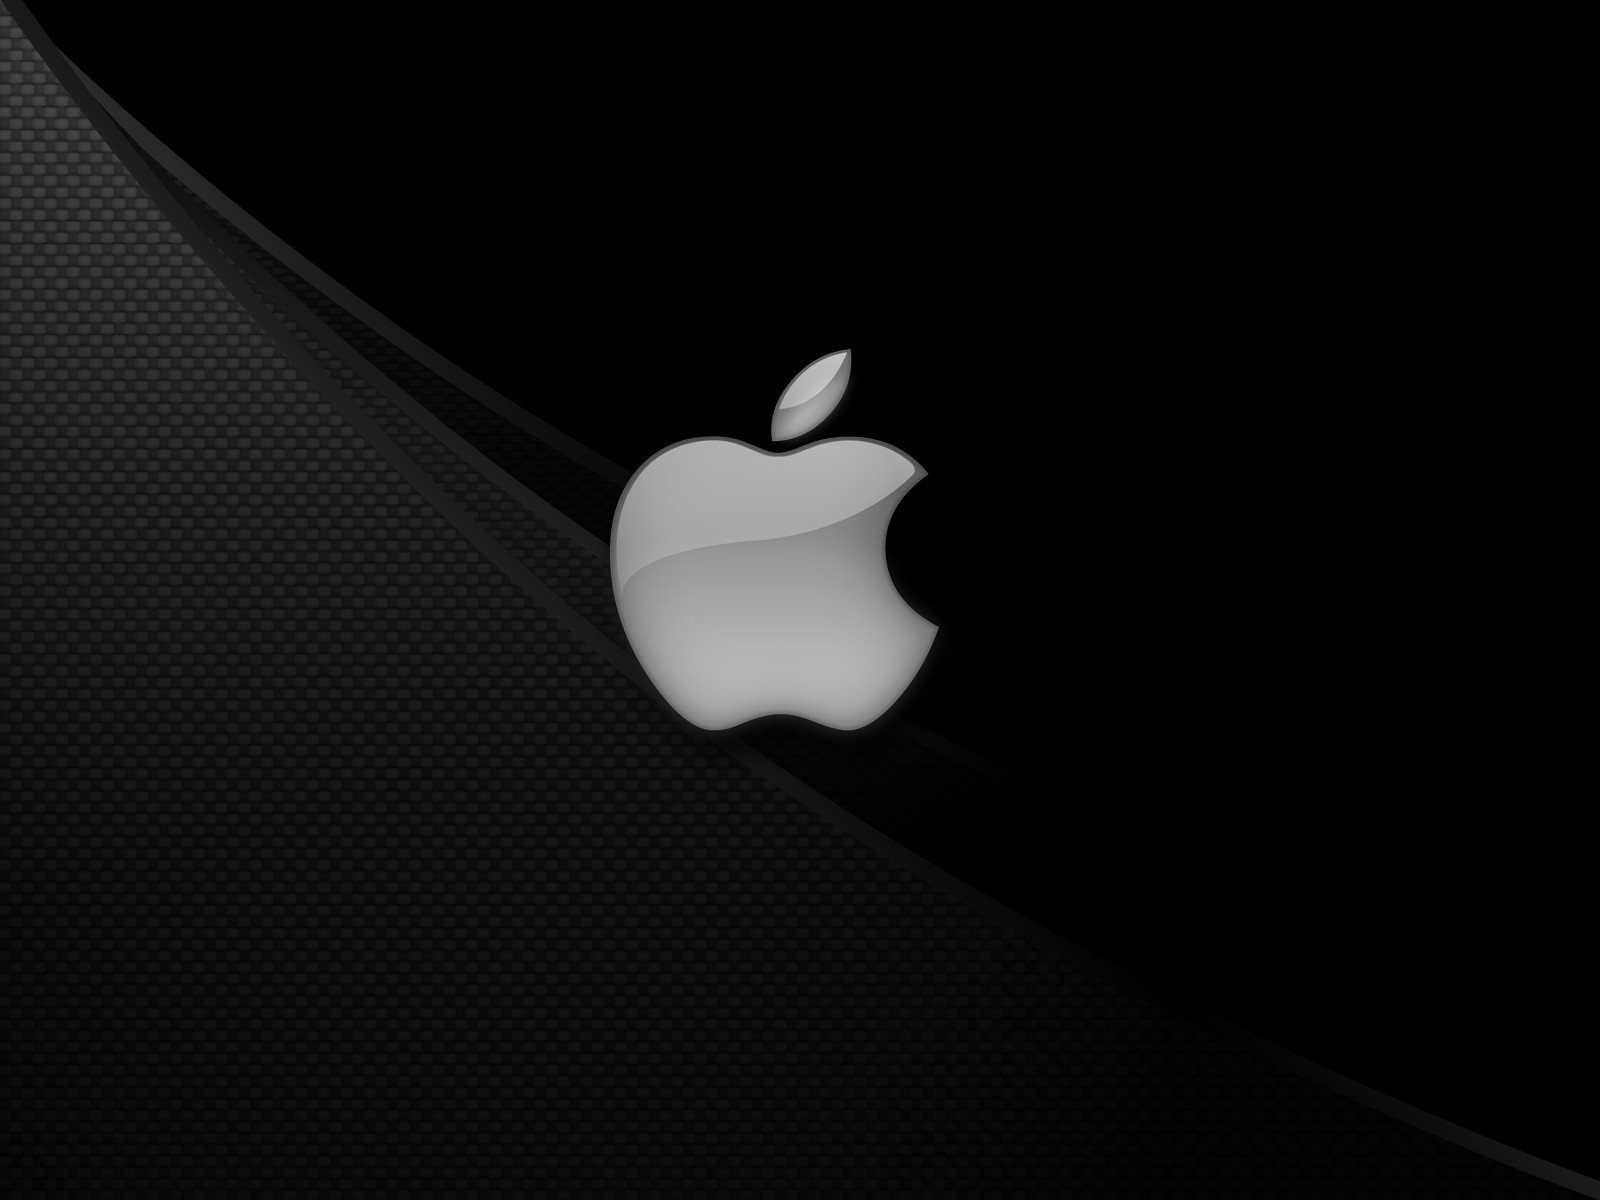 Apple Black and White HD Desktop Background Wallpapers 1600x1200